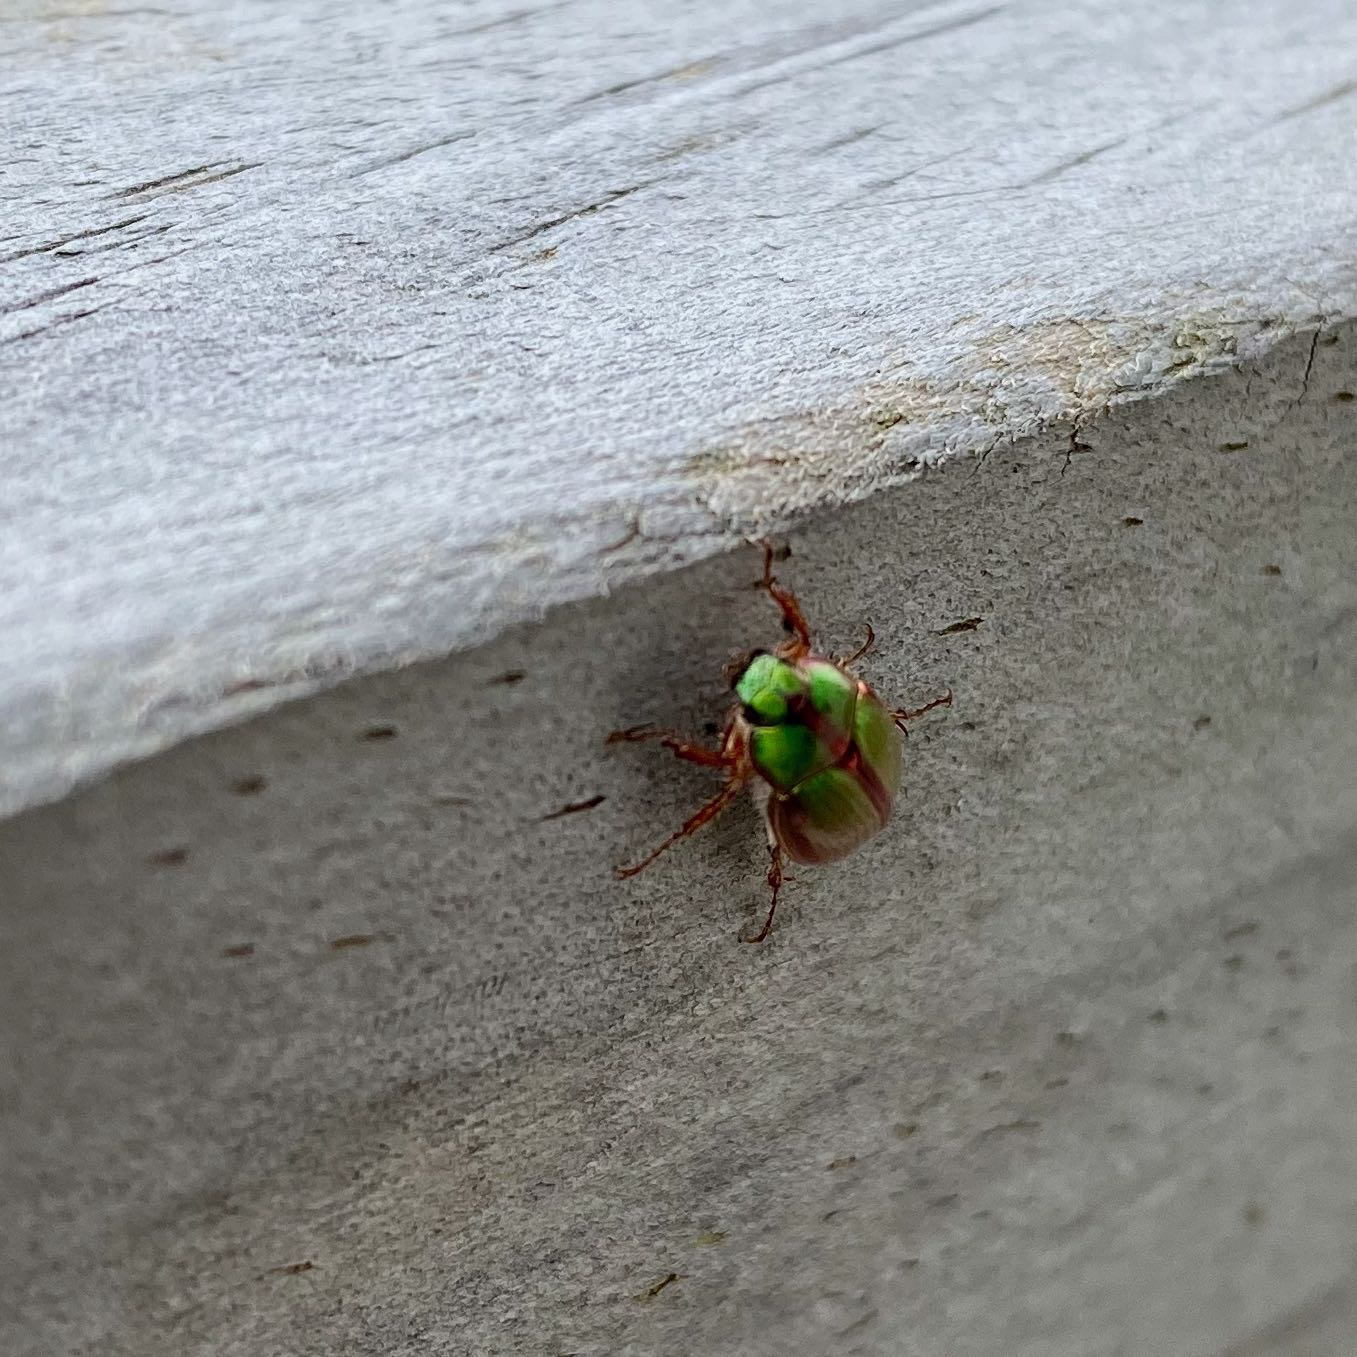 Bright green beetle on a wooden railing, another view.